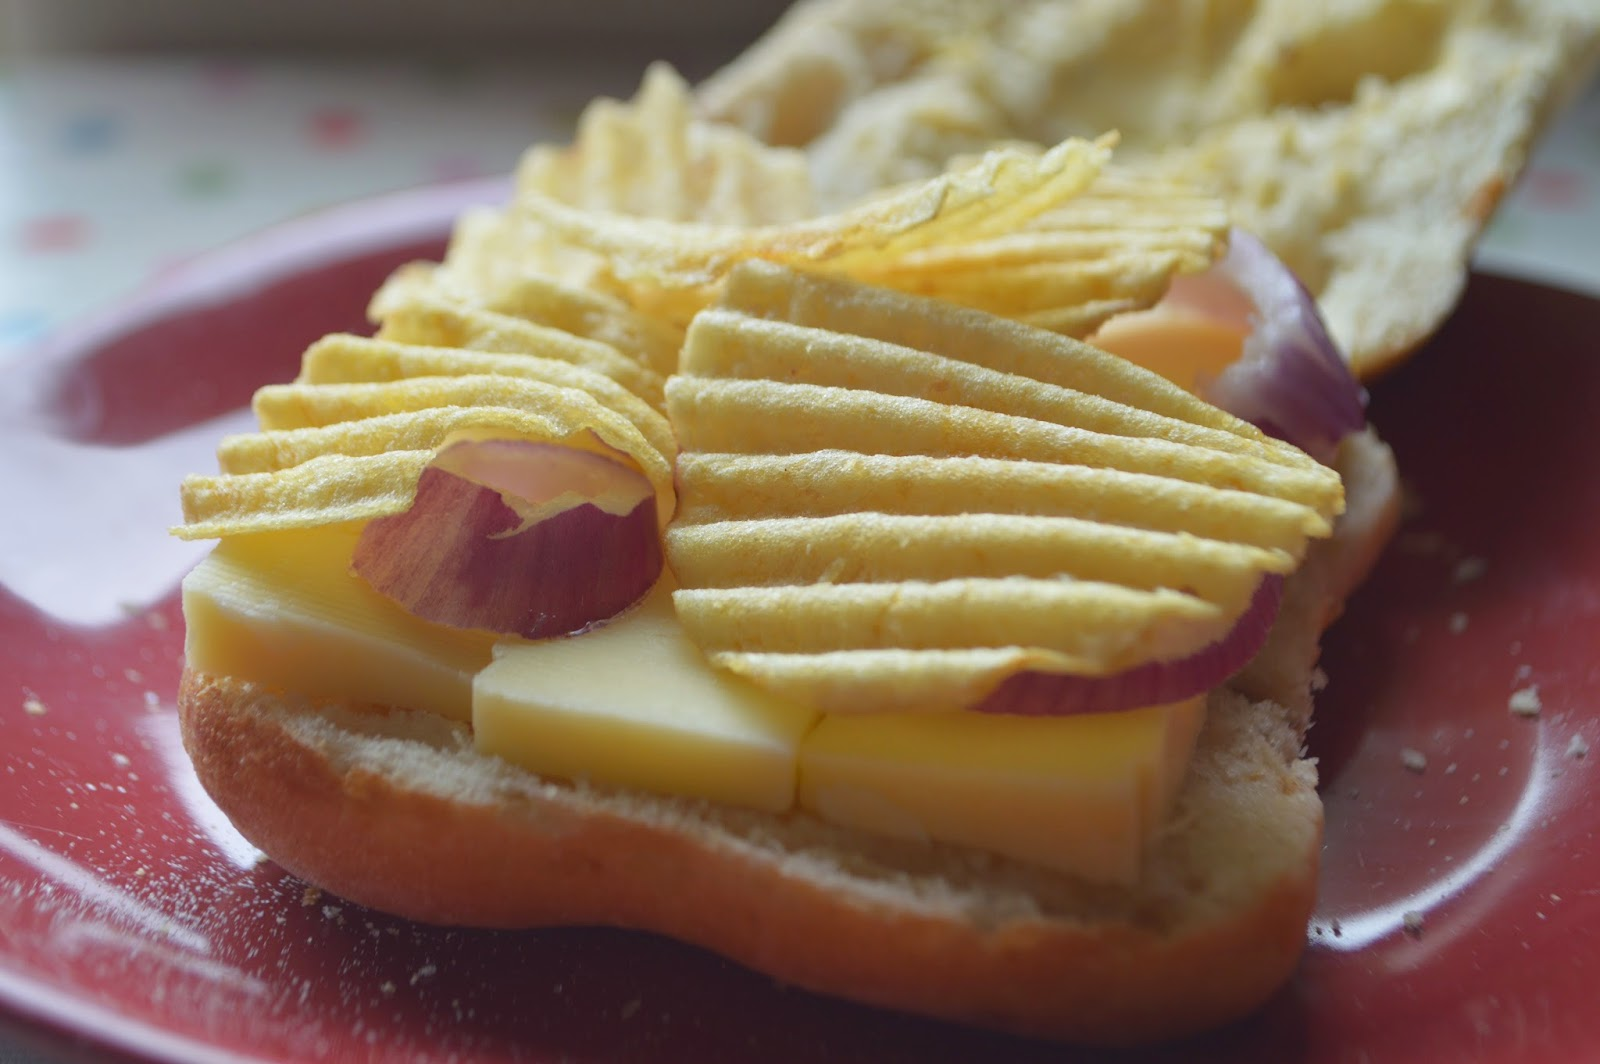 National Crisp Sandwich Week Seabrooks Cheese and Onion Sandwich Recipe